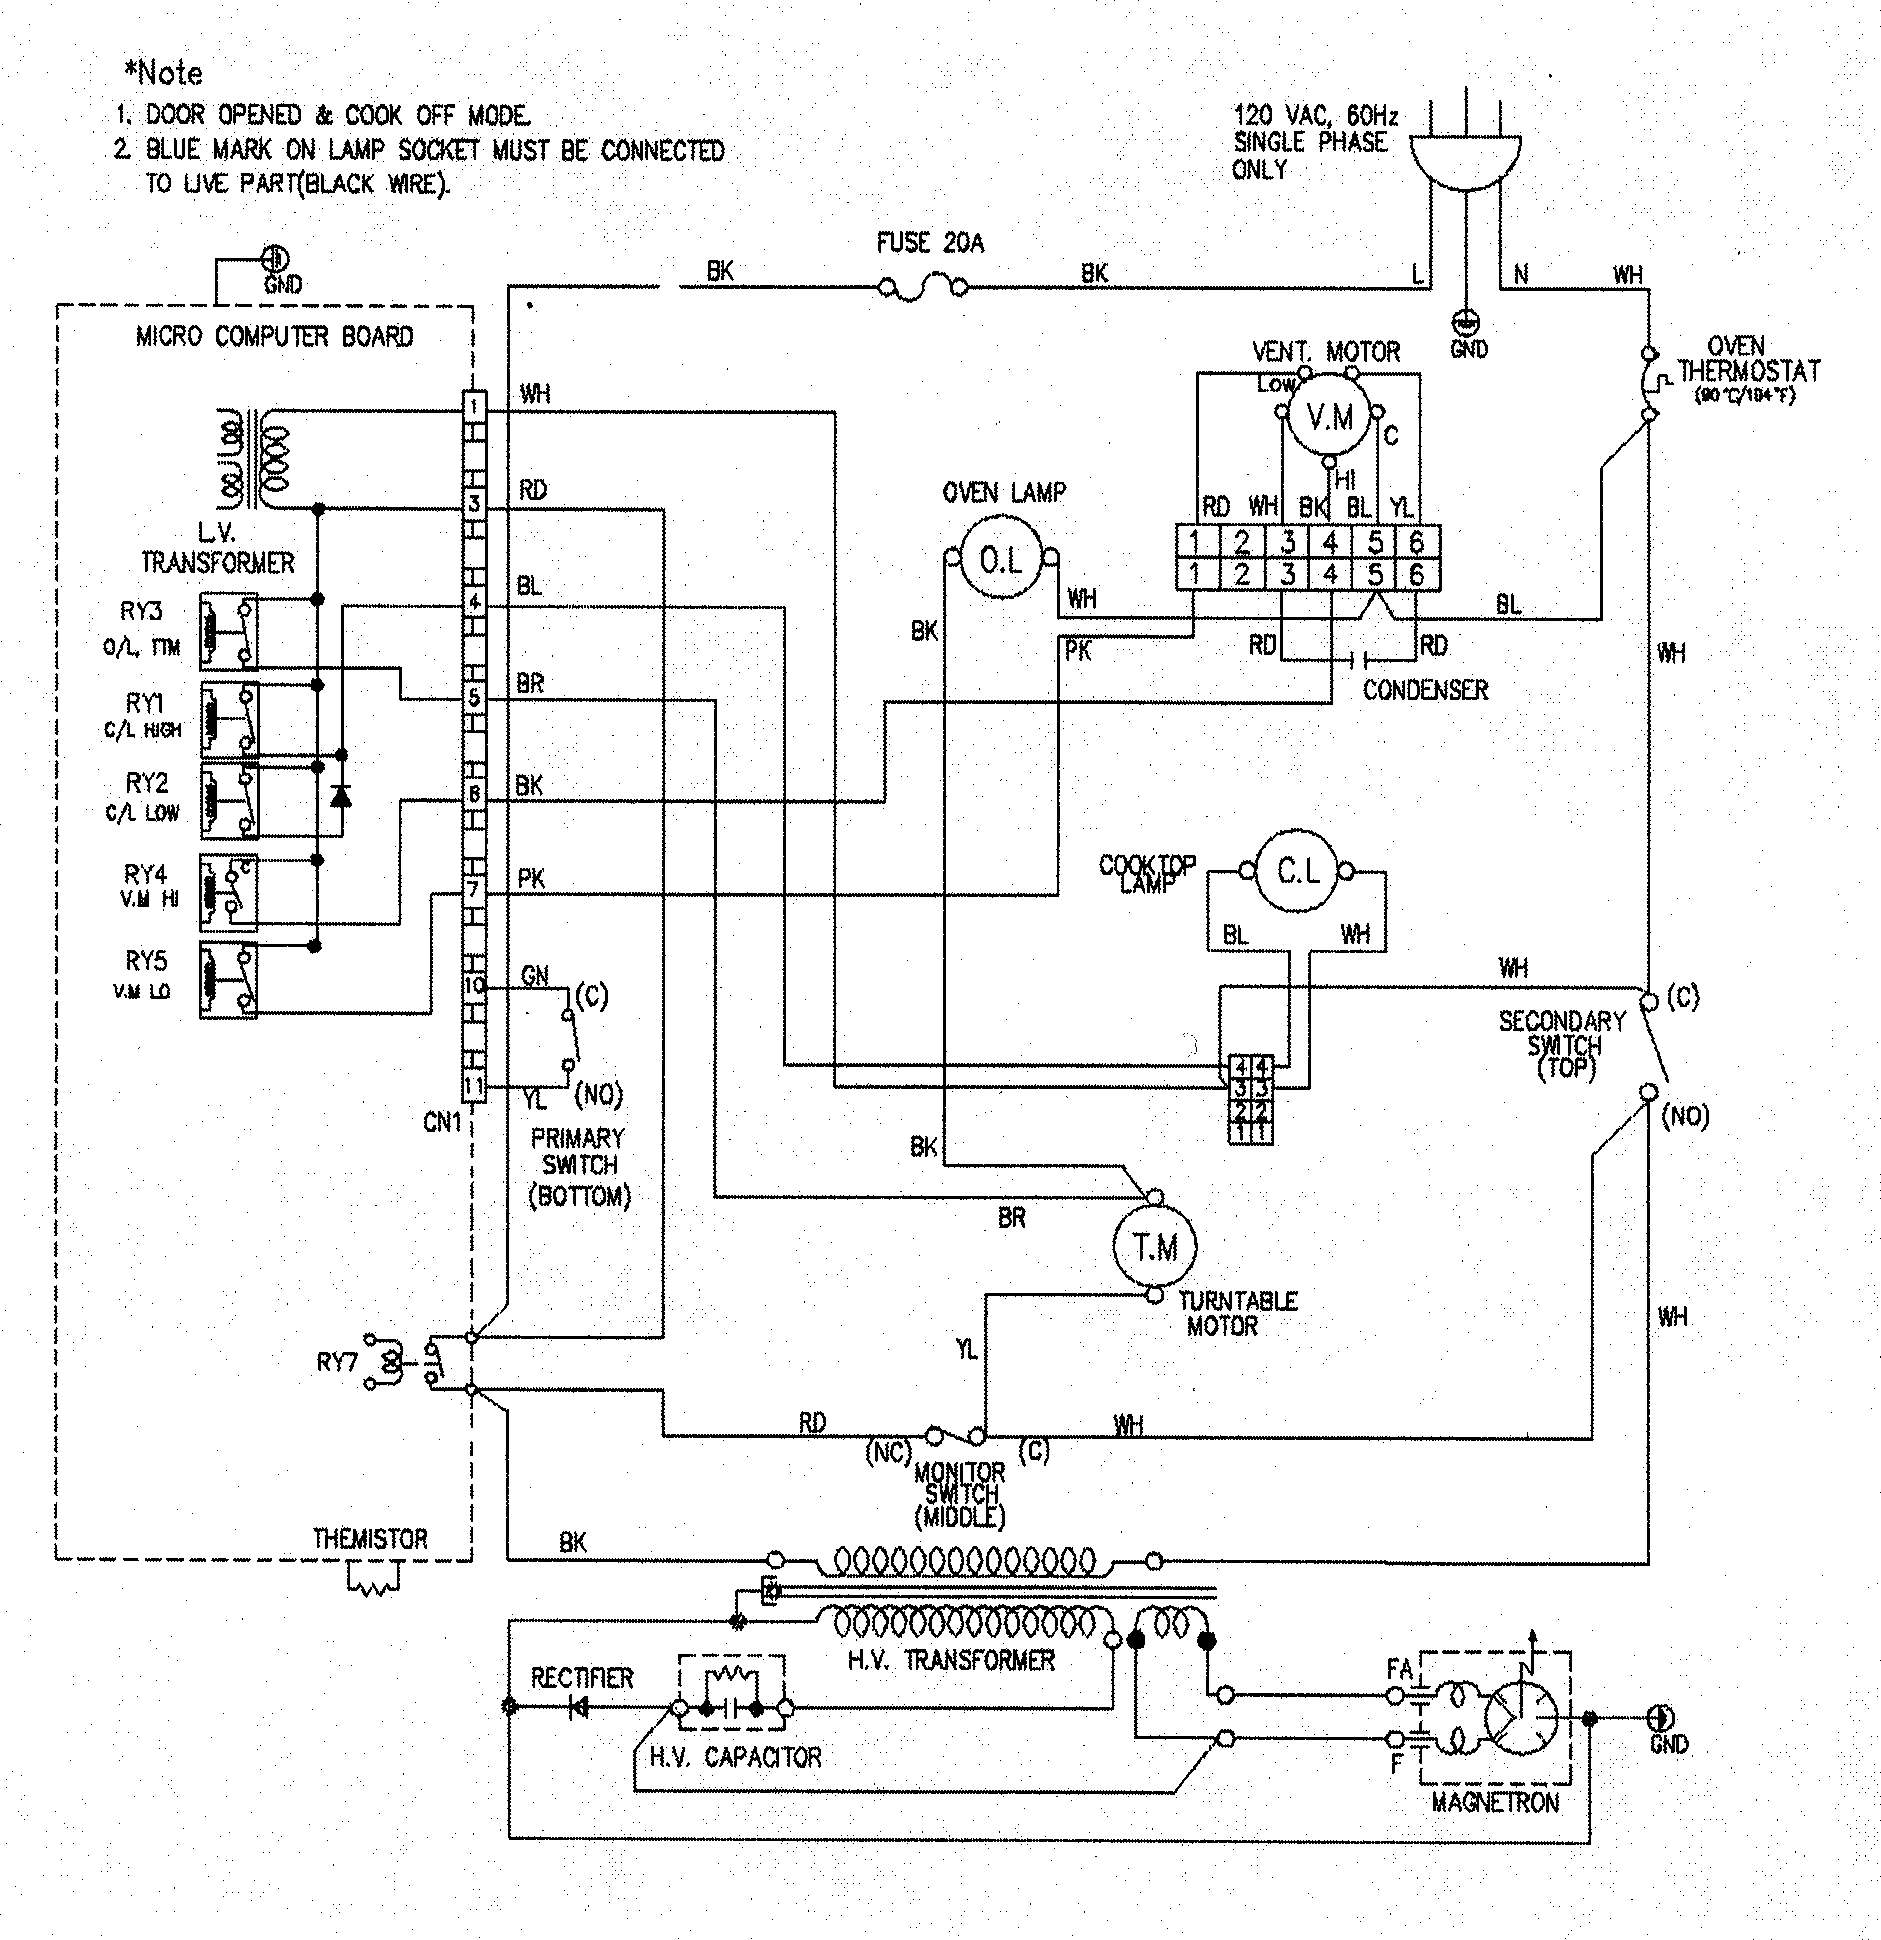 Download Microwave Ovens Schematic Diagrams And Service Manuals S. Download Microwave Ovens Schematic Diagrams And Service Manuals S Oven Diagram. Wiring. Stove Ladder Wiring Diagram At Scoala.co